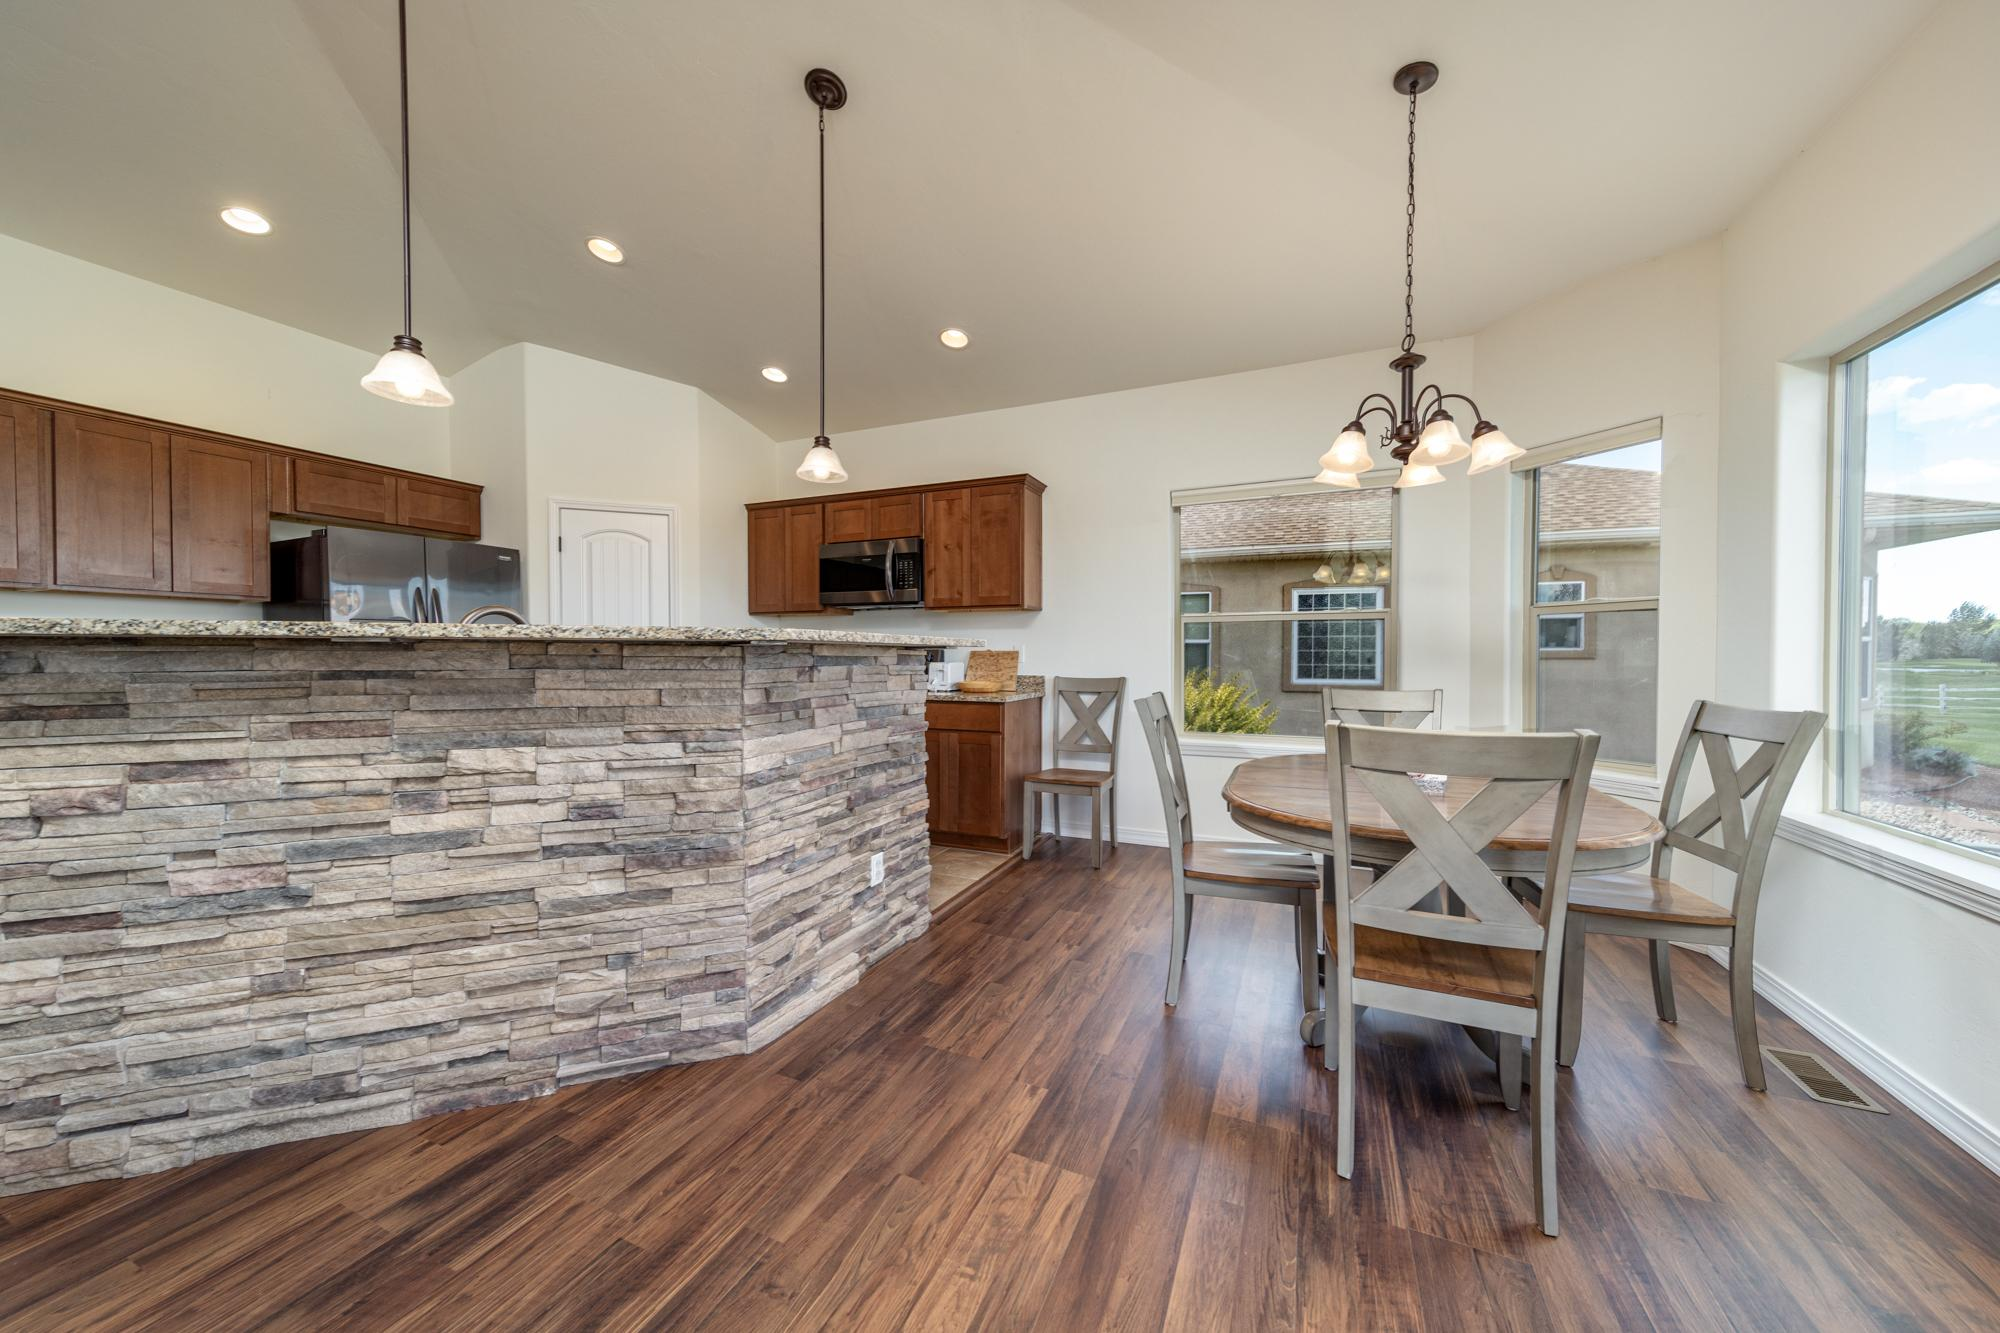 Kitchen and Dining Area - 597 Cobble Dr Montrose, CO - Atha Team MLS Colorado